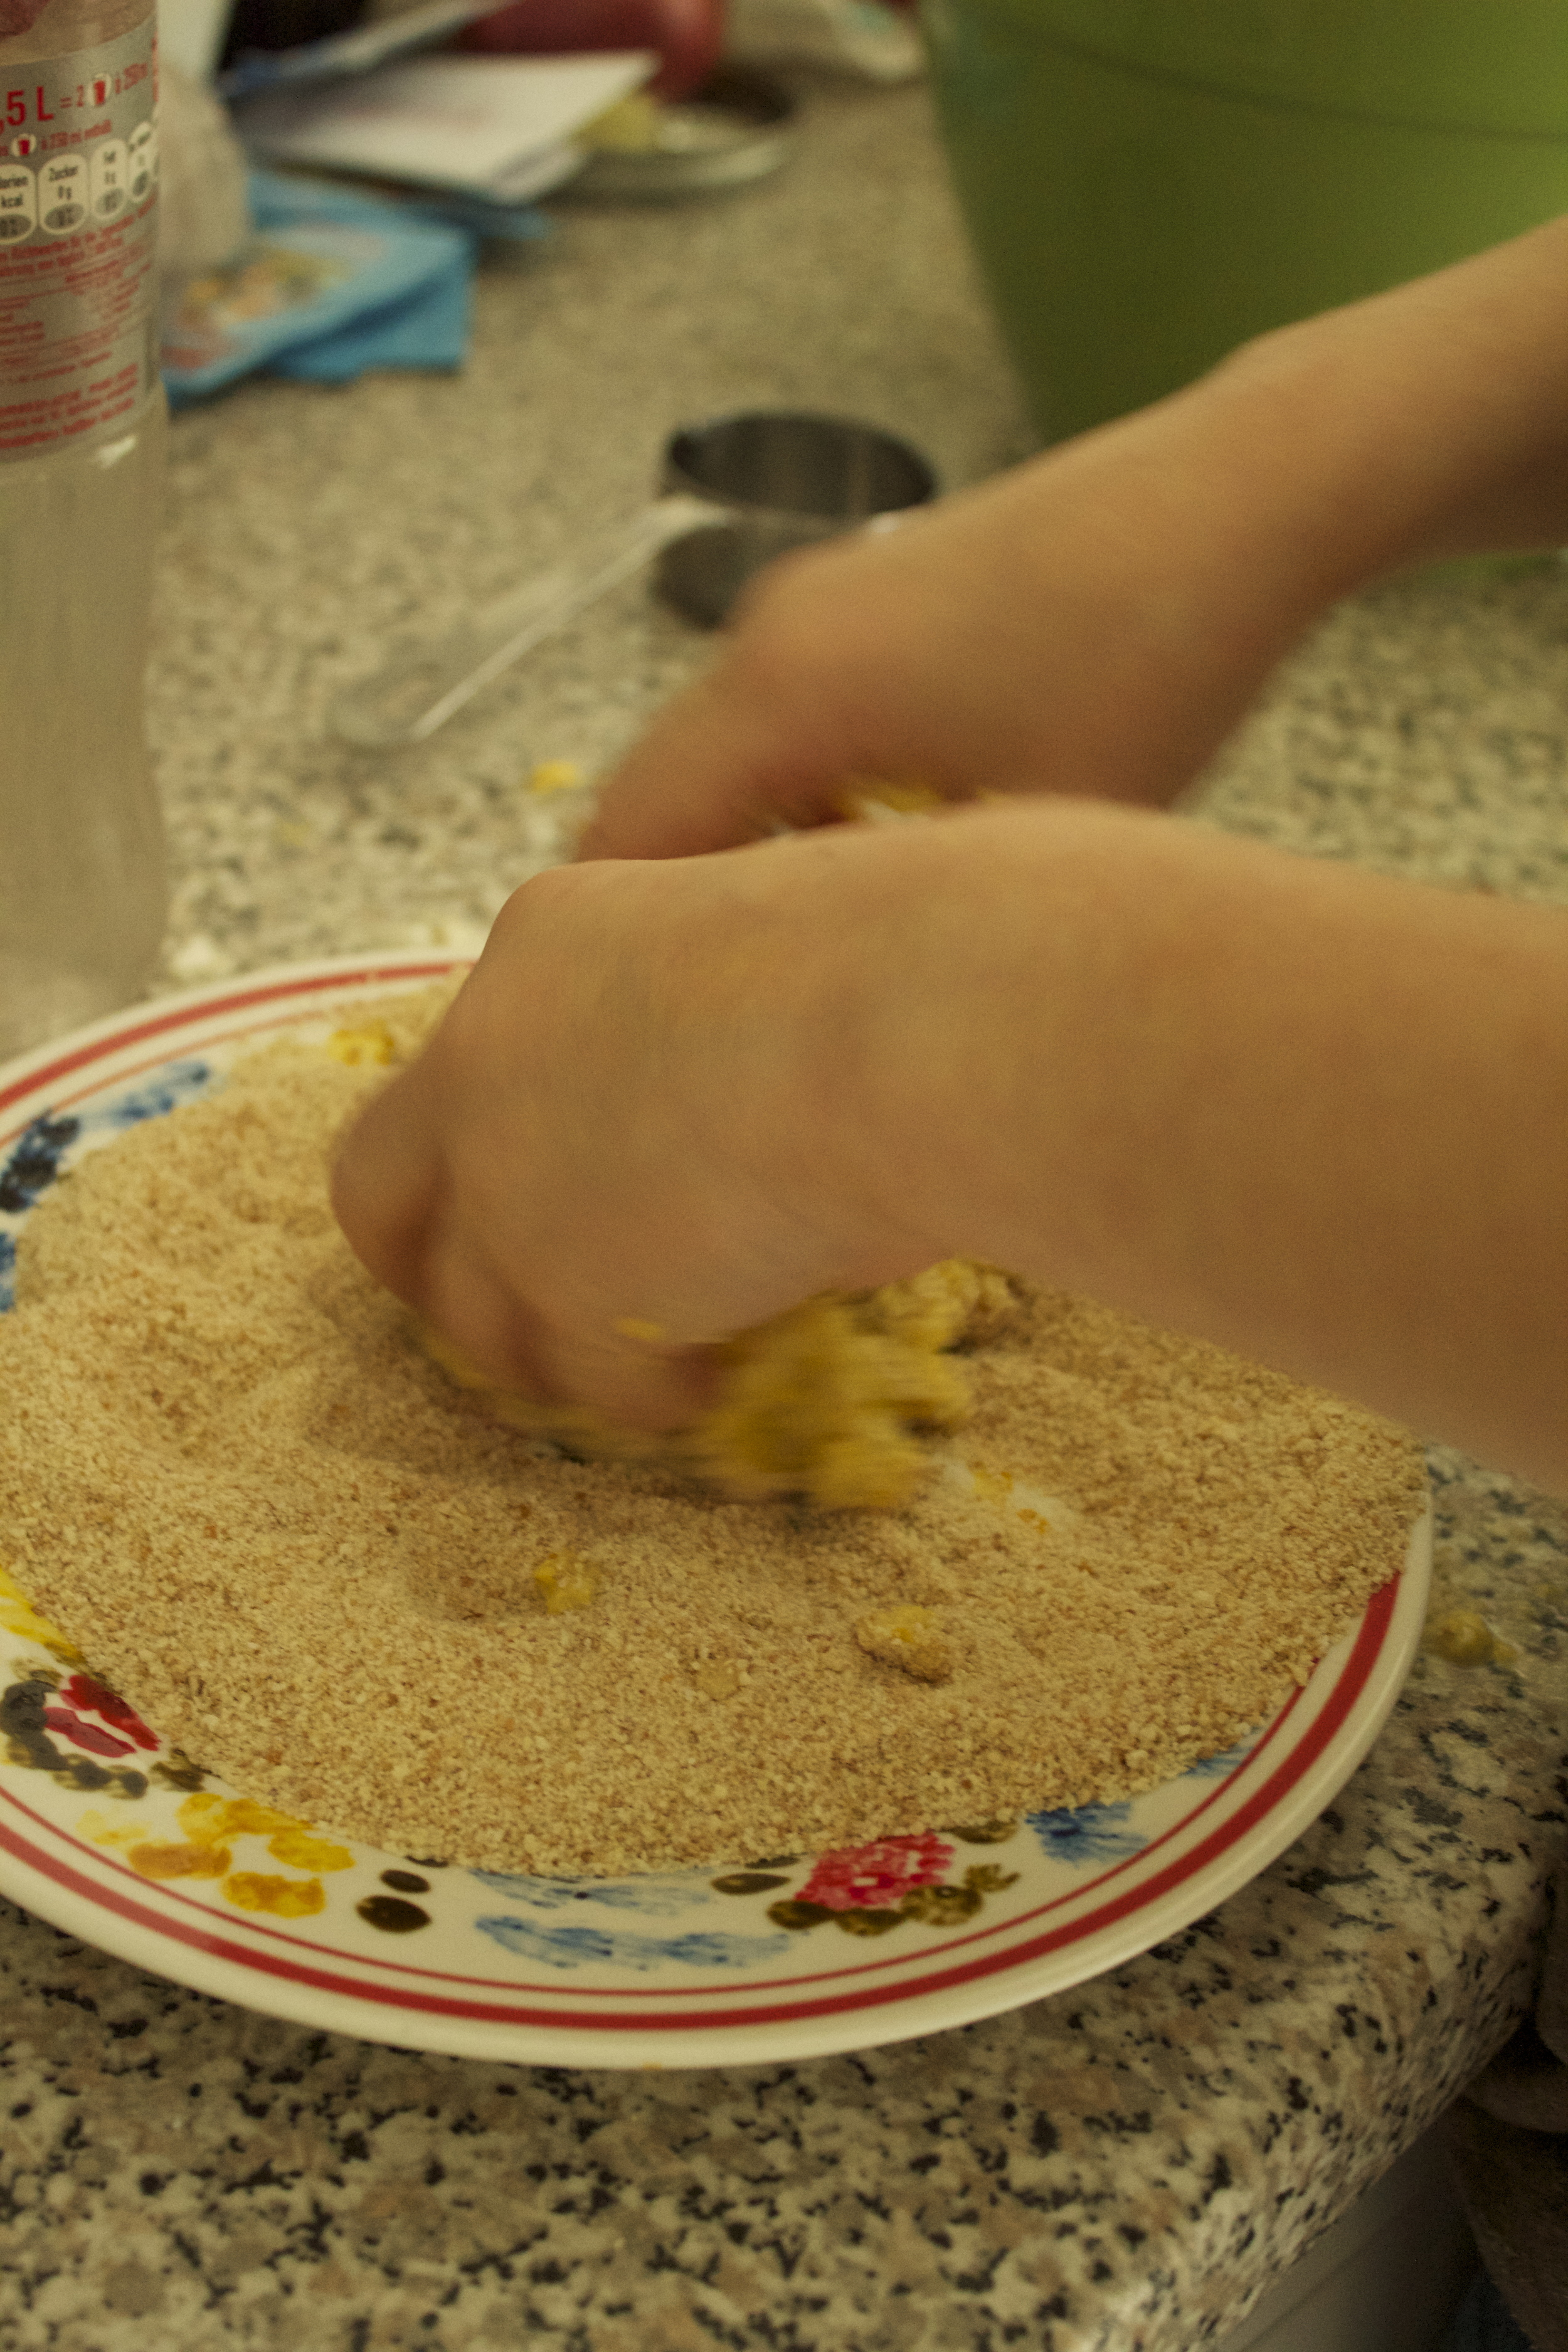 Coating with bread crumbs.